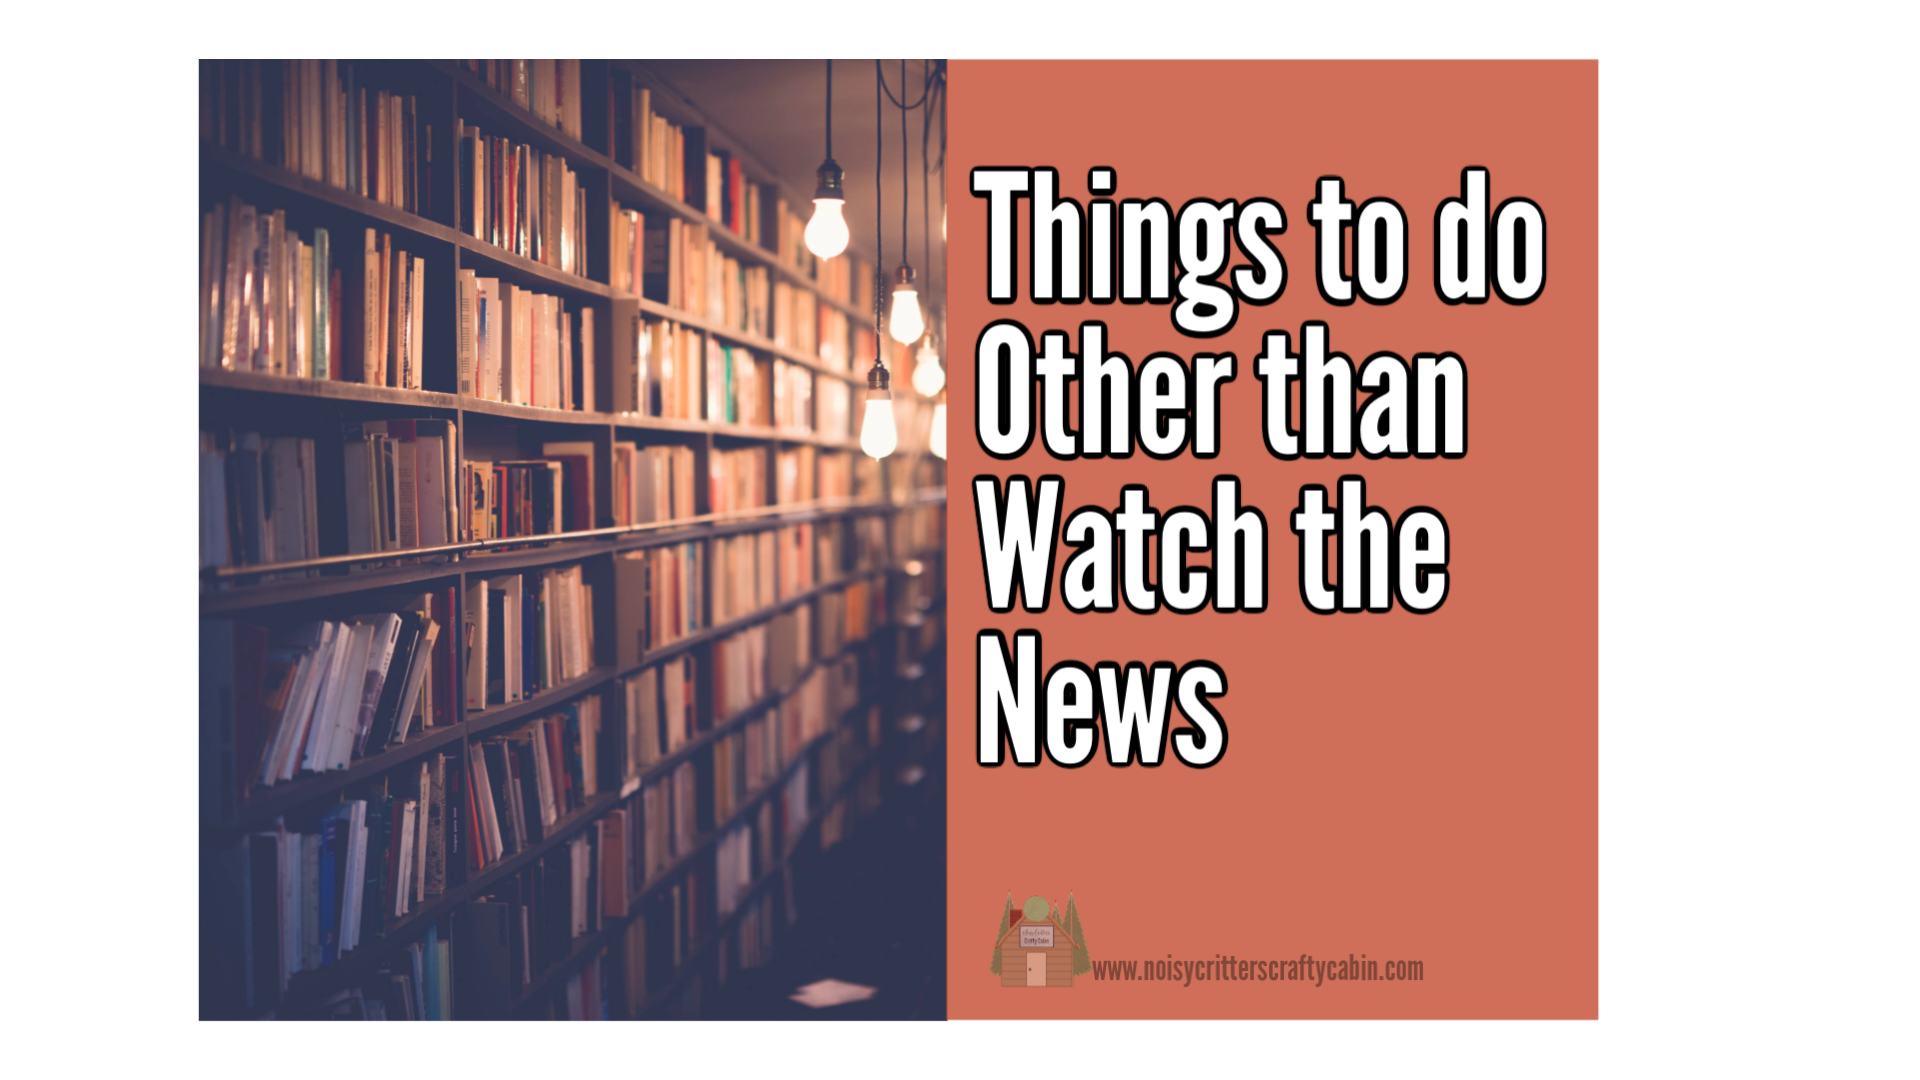 10 Things to do Other than Watch the News